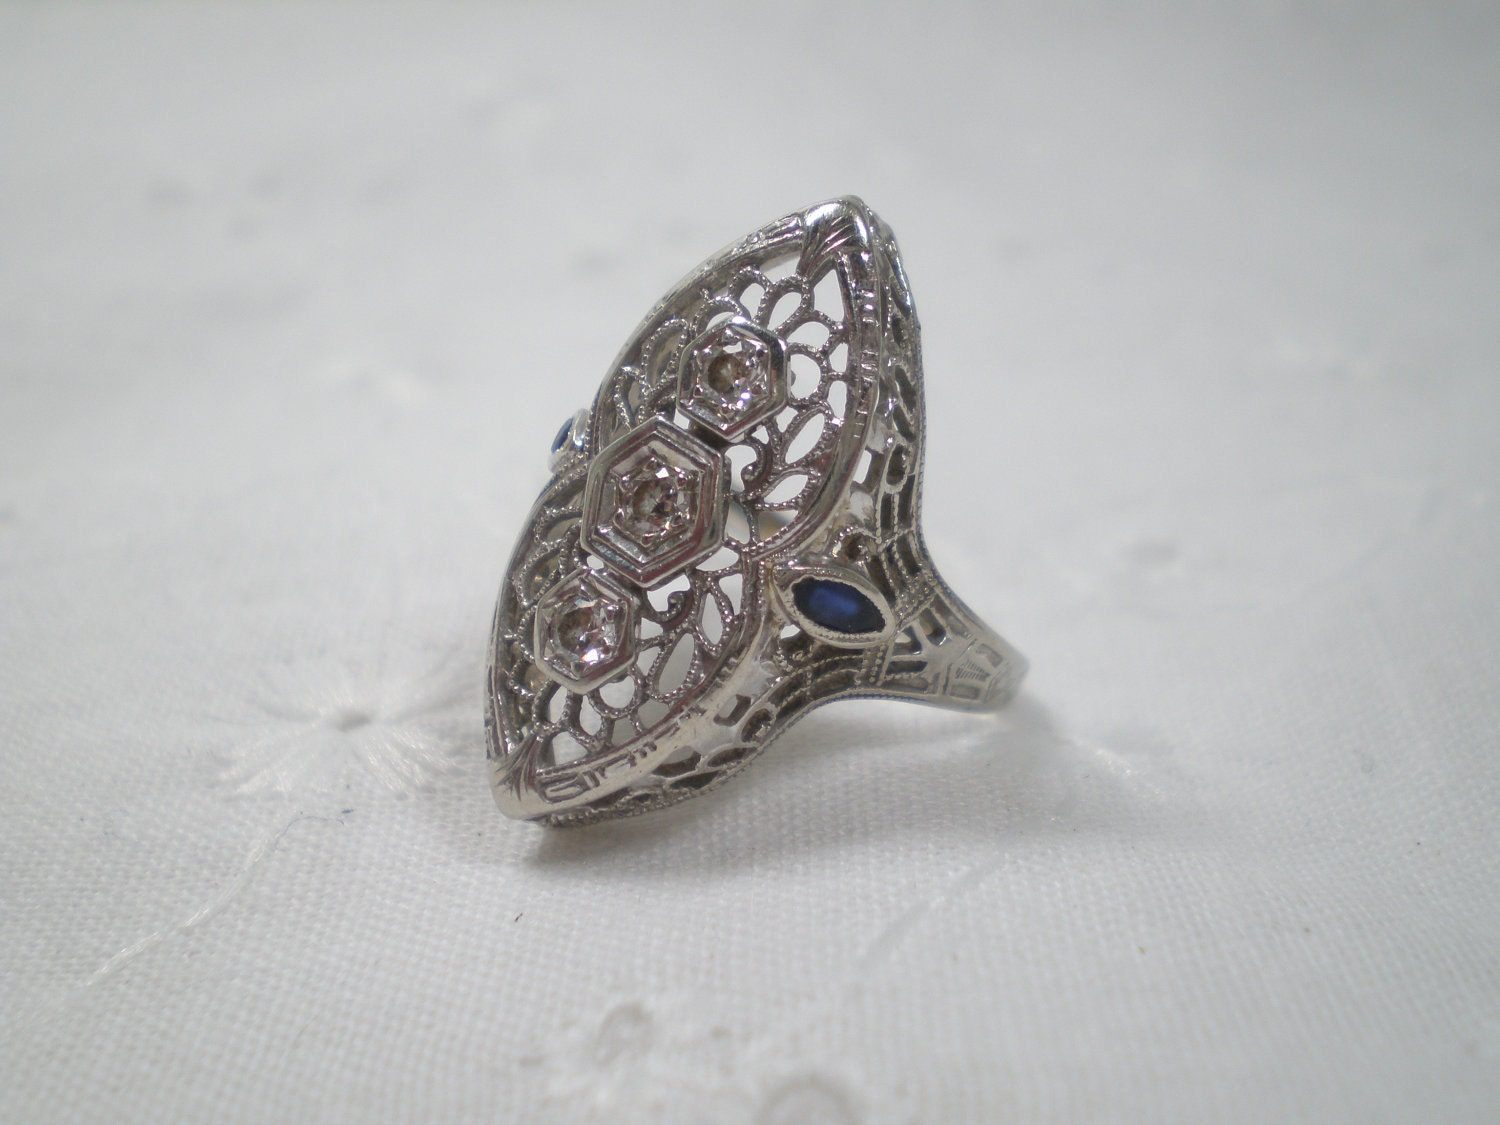 Vintage Diamond And Sapphire Filigree Ring Engagement Ring